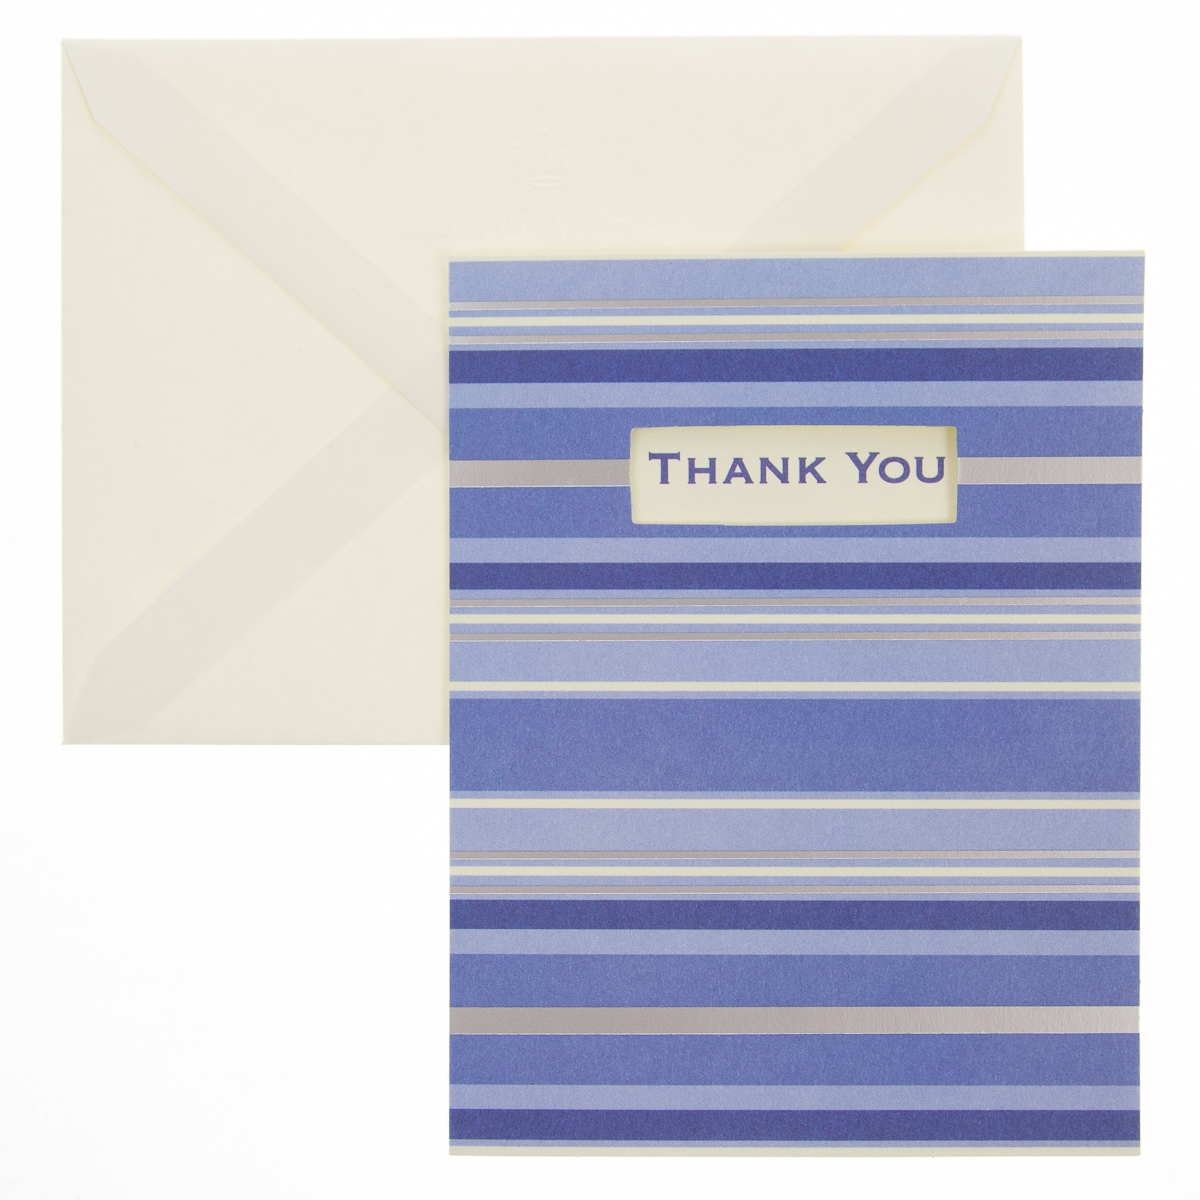 "50 Pack Hallmark 4"" x 5.5"" Blank Inside Thank You Cards With Envelopes Bulk Set Thank You"